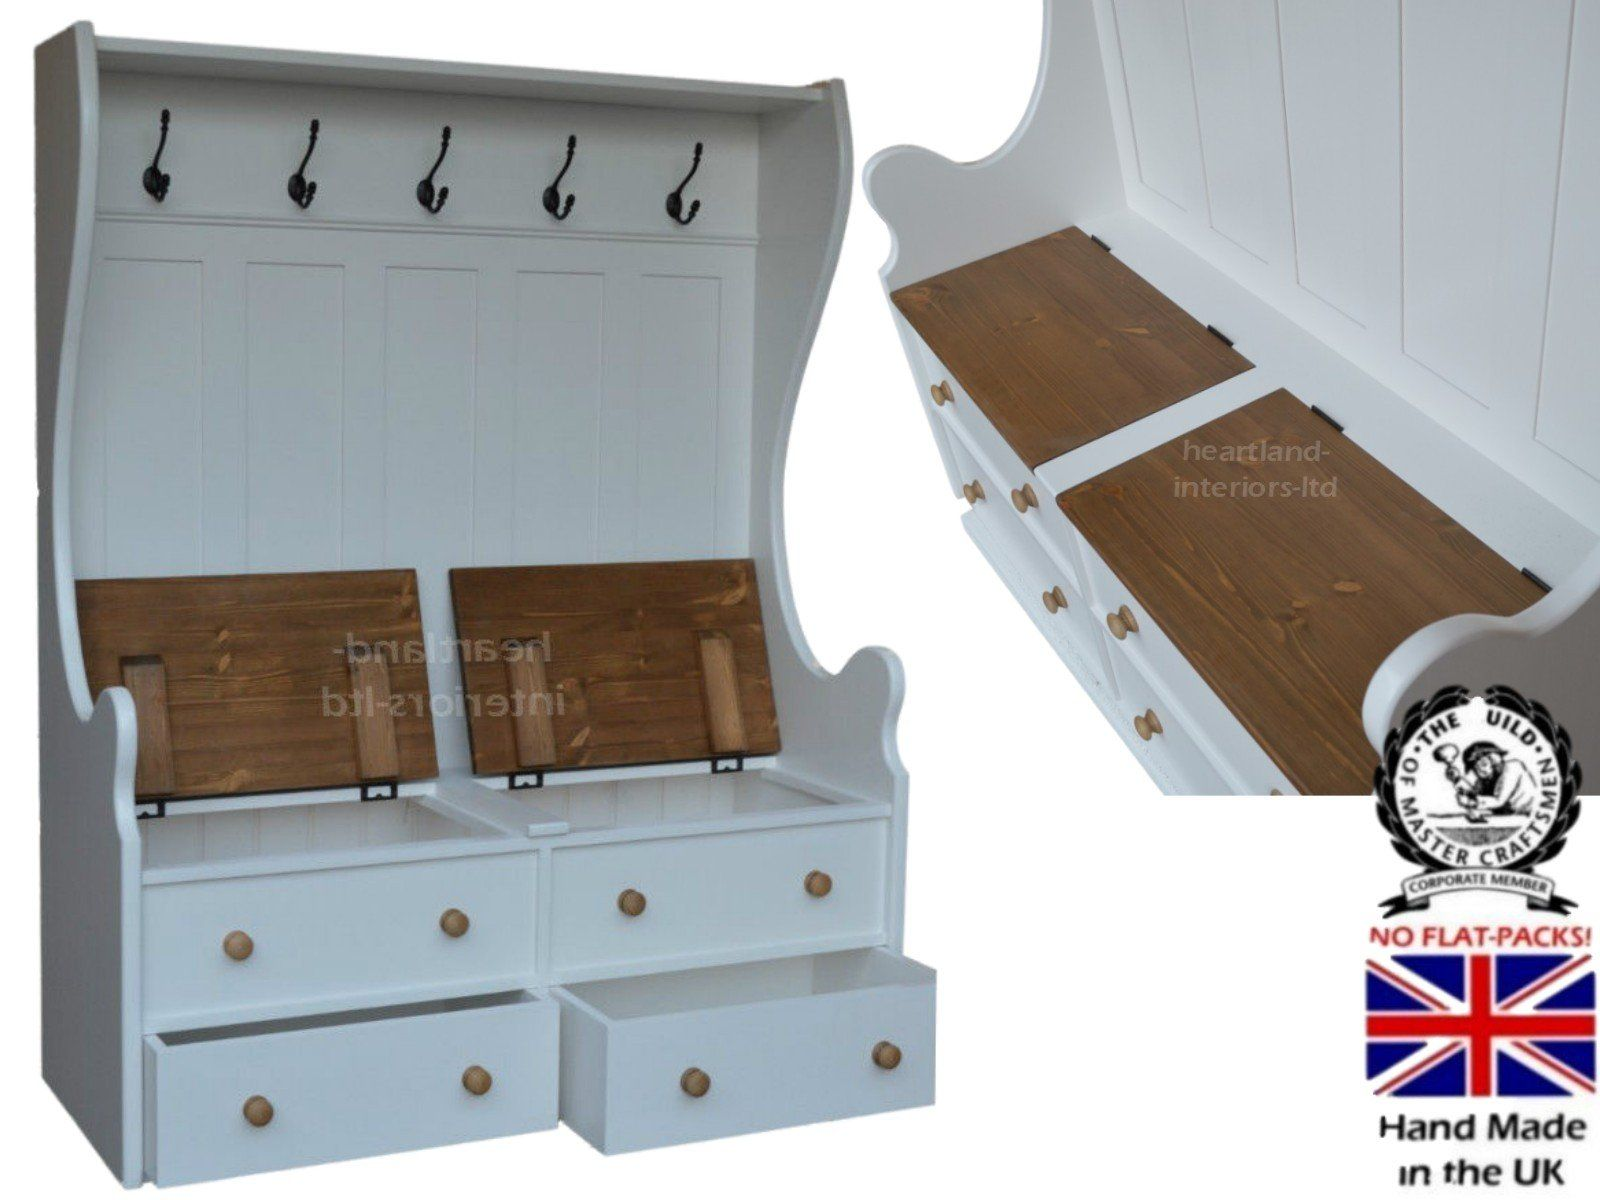 100 Solid Wood Storage Bench 4ft X 5ft Handcrafted White